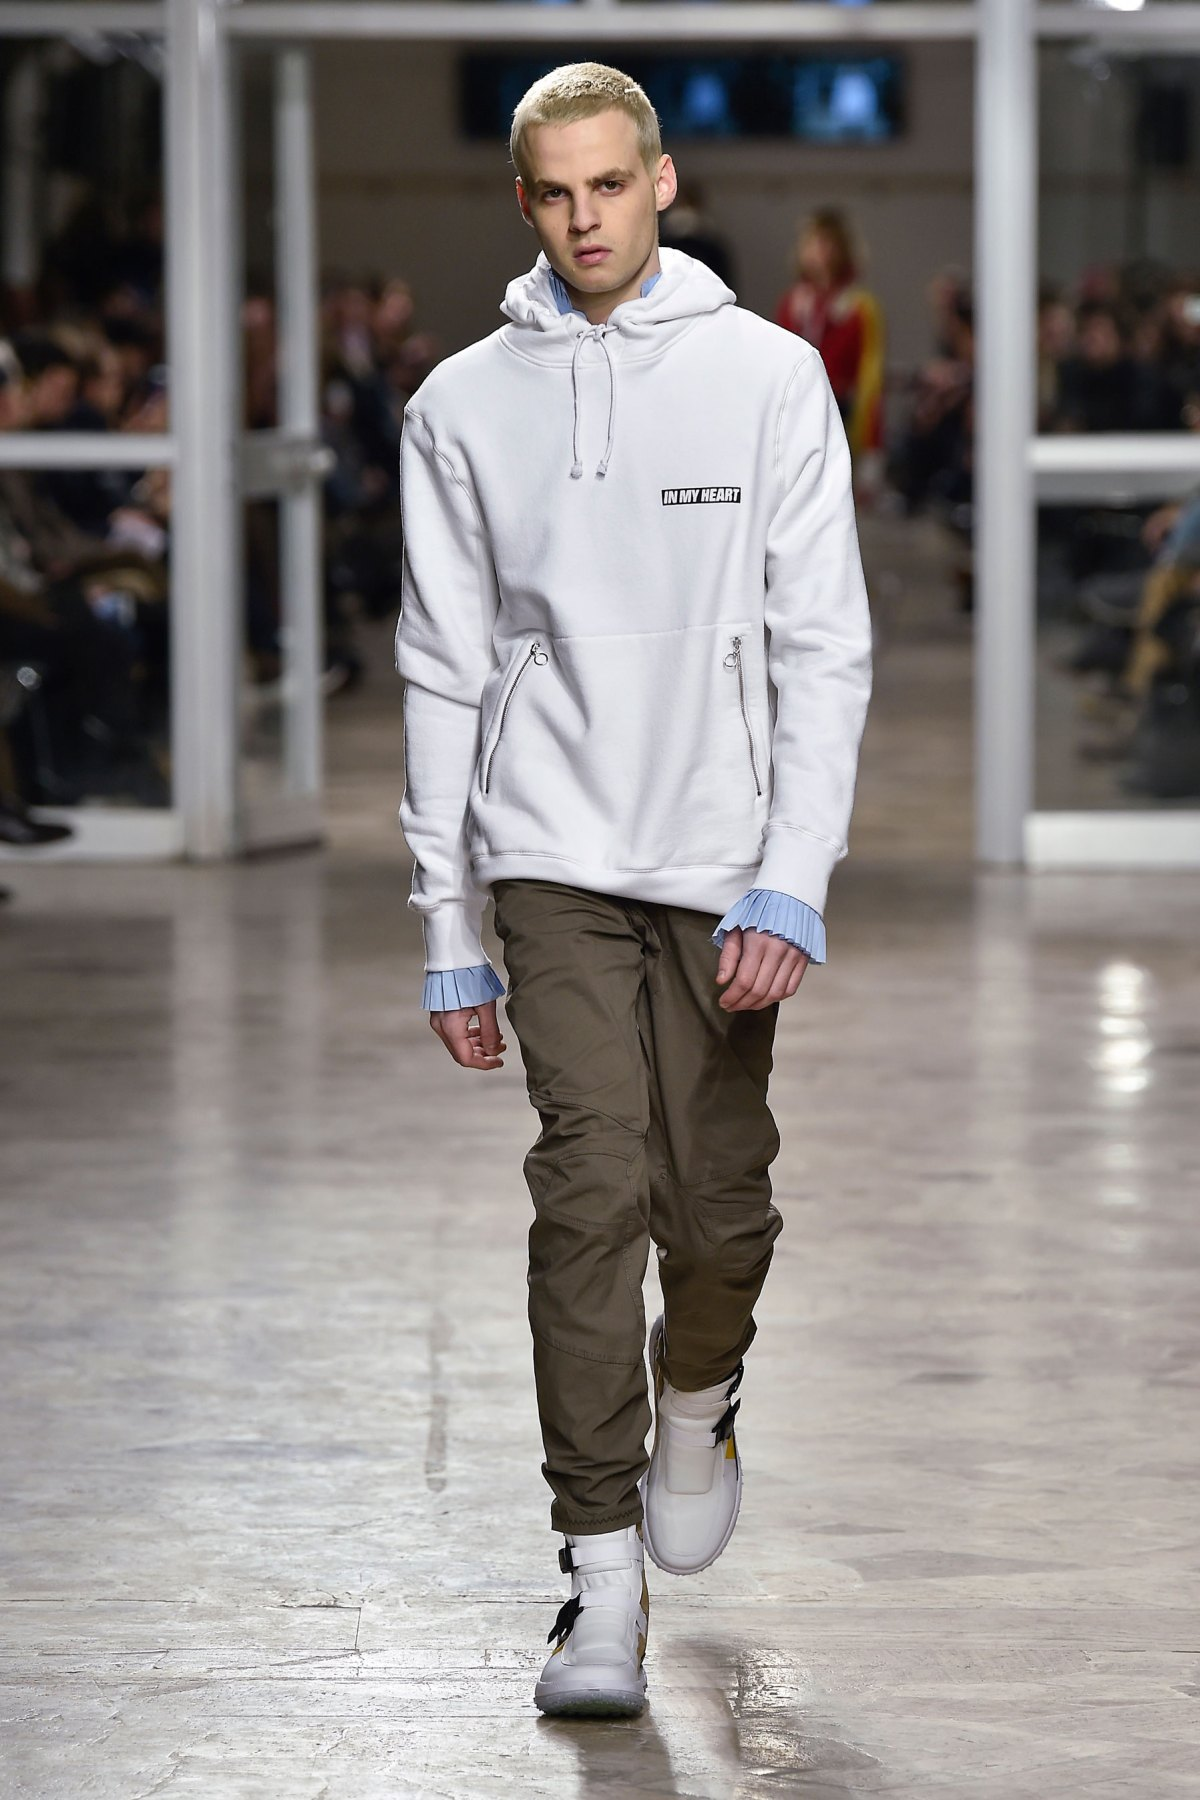 Tim Coppens PU m RF17 1194